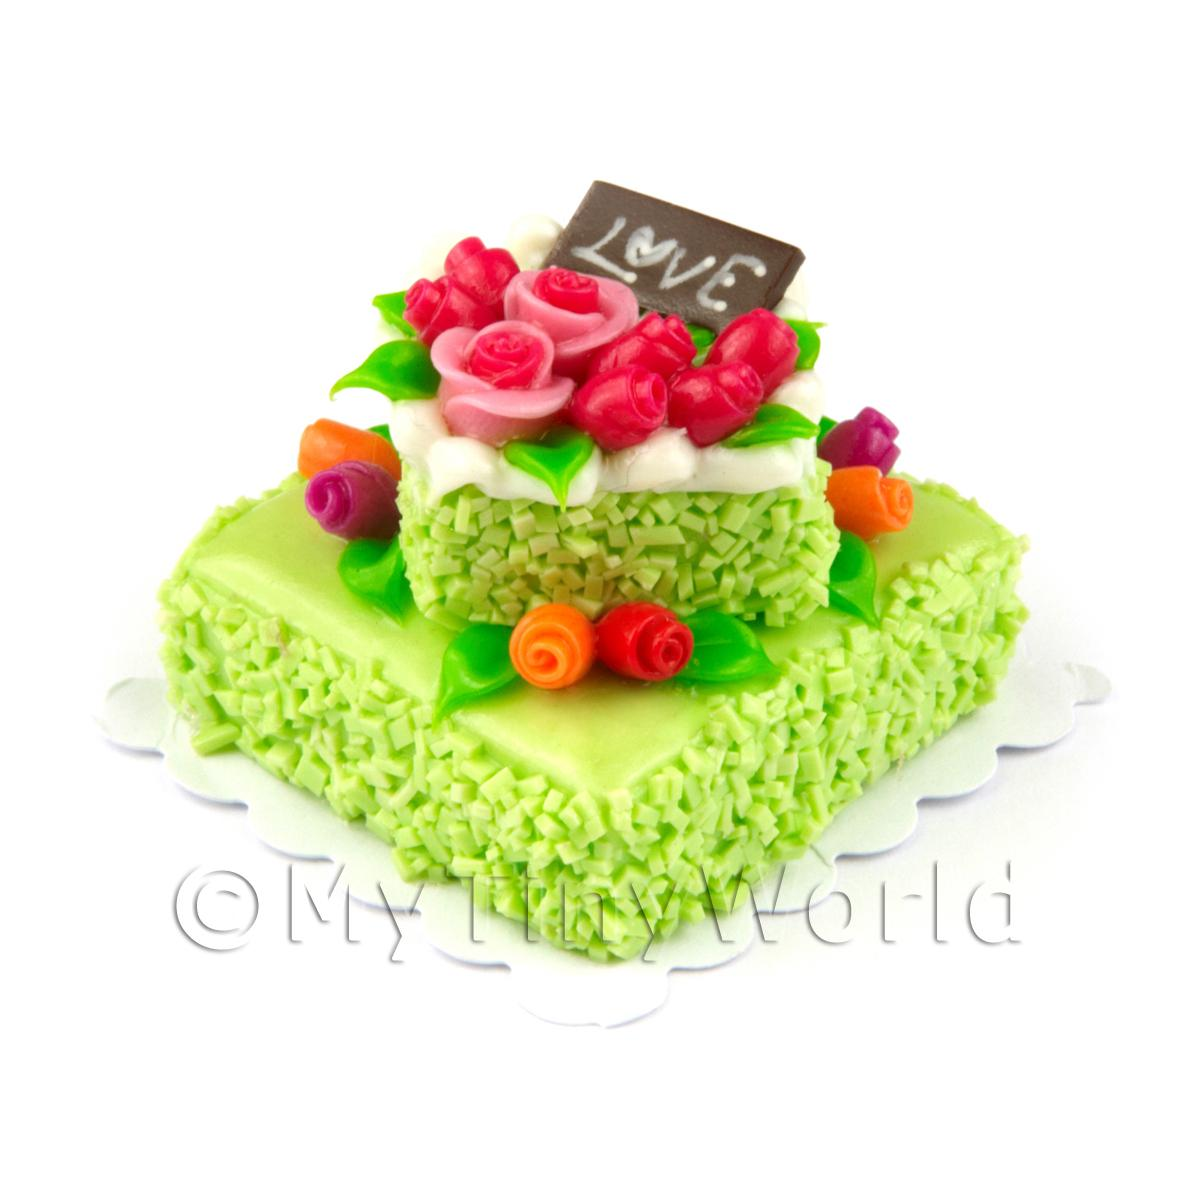 Dolls House Miniature Large Handmade Two Tier Green Iced Cake